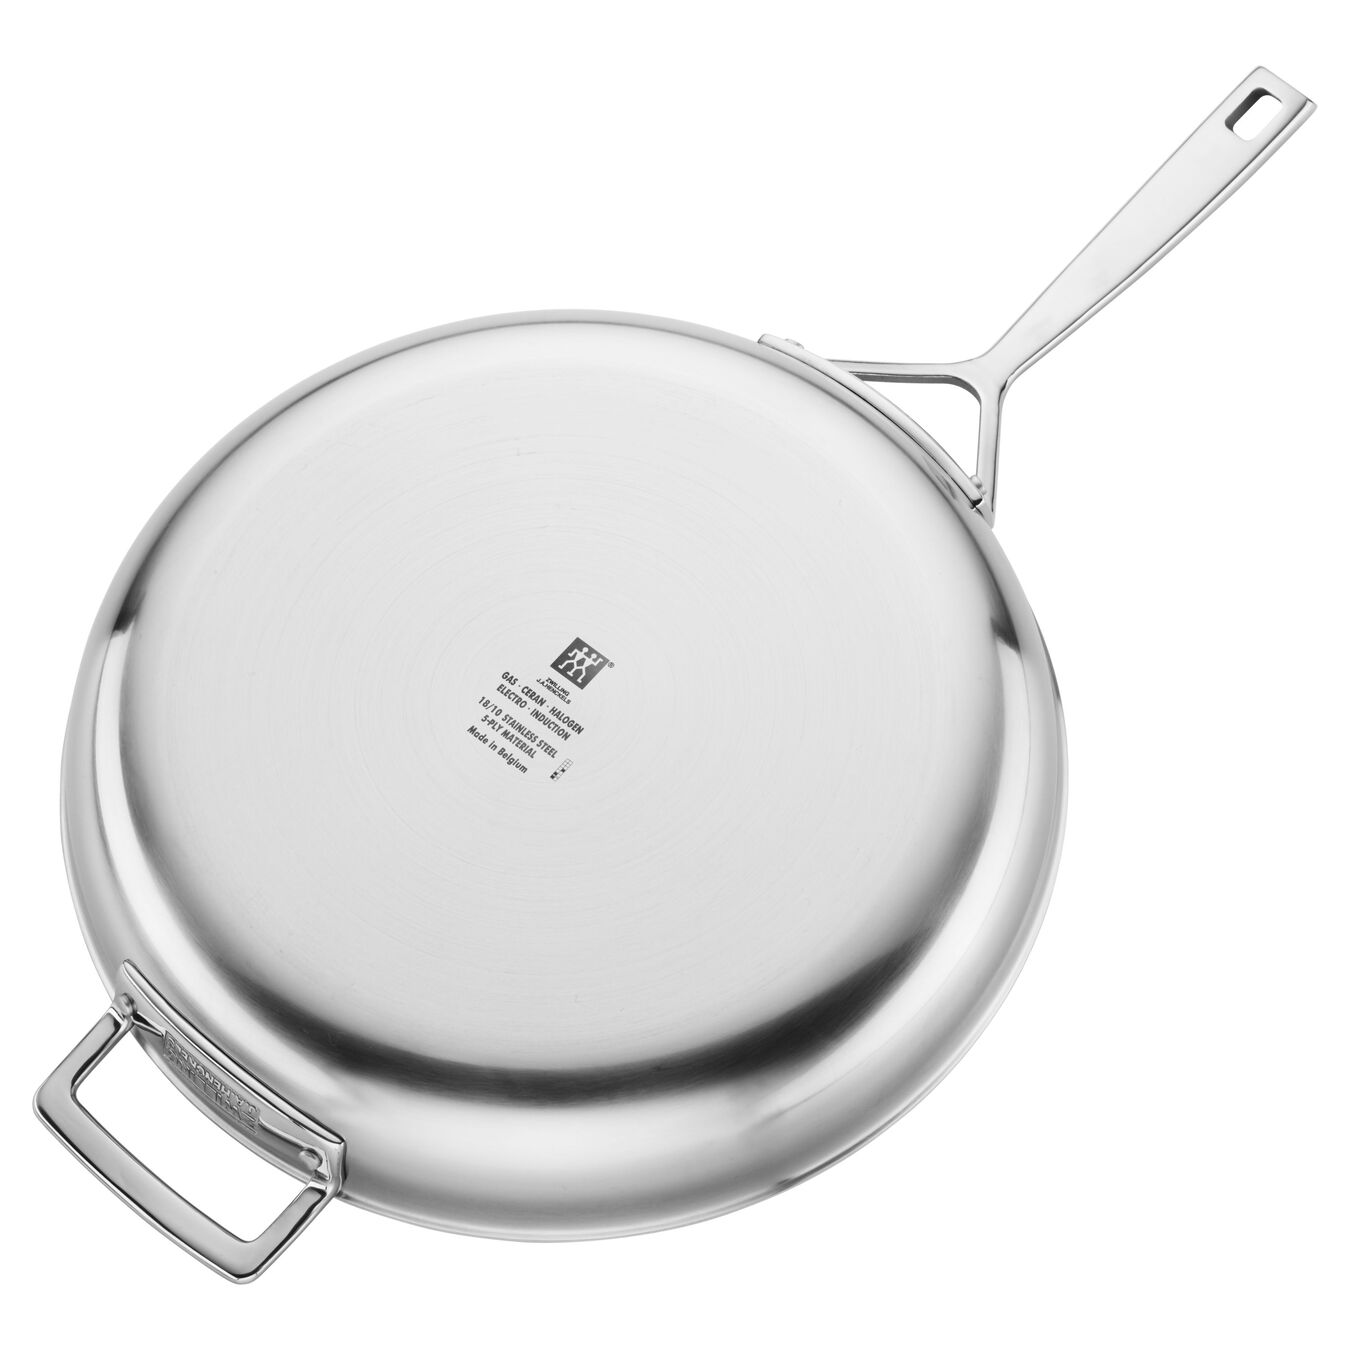 Stainless Steel 12.5-inch  Fry Pan,,large 3